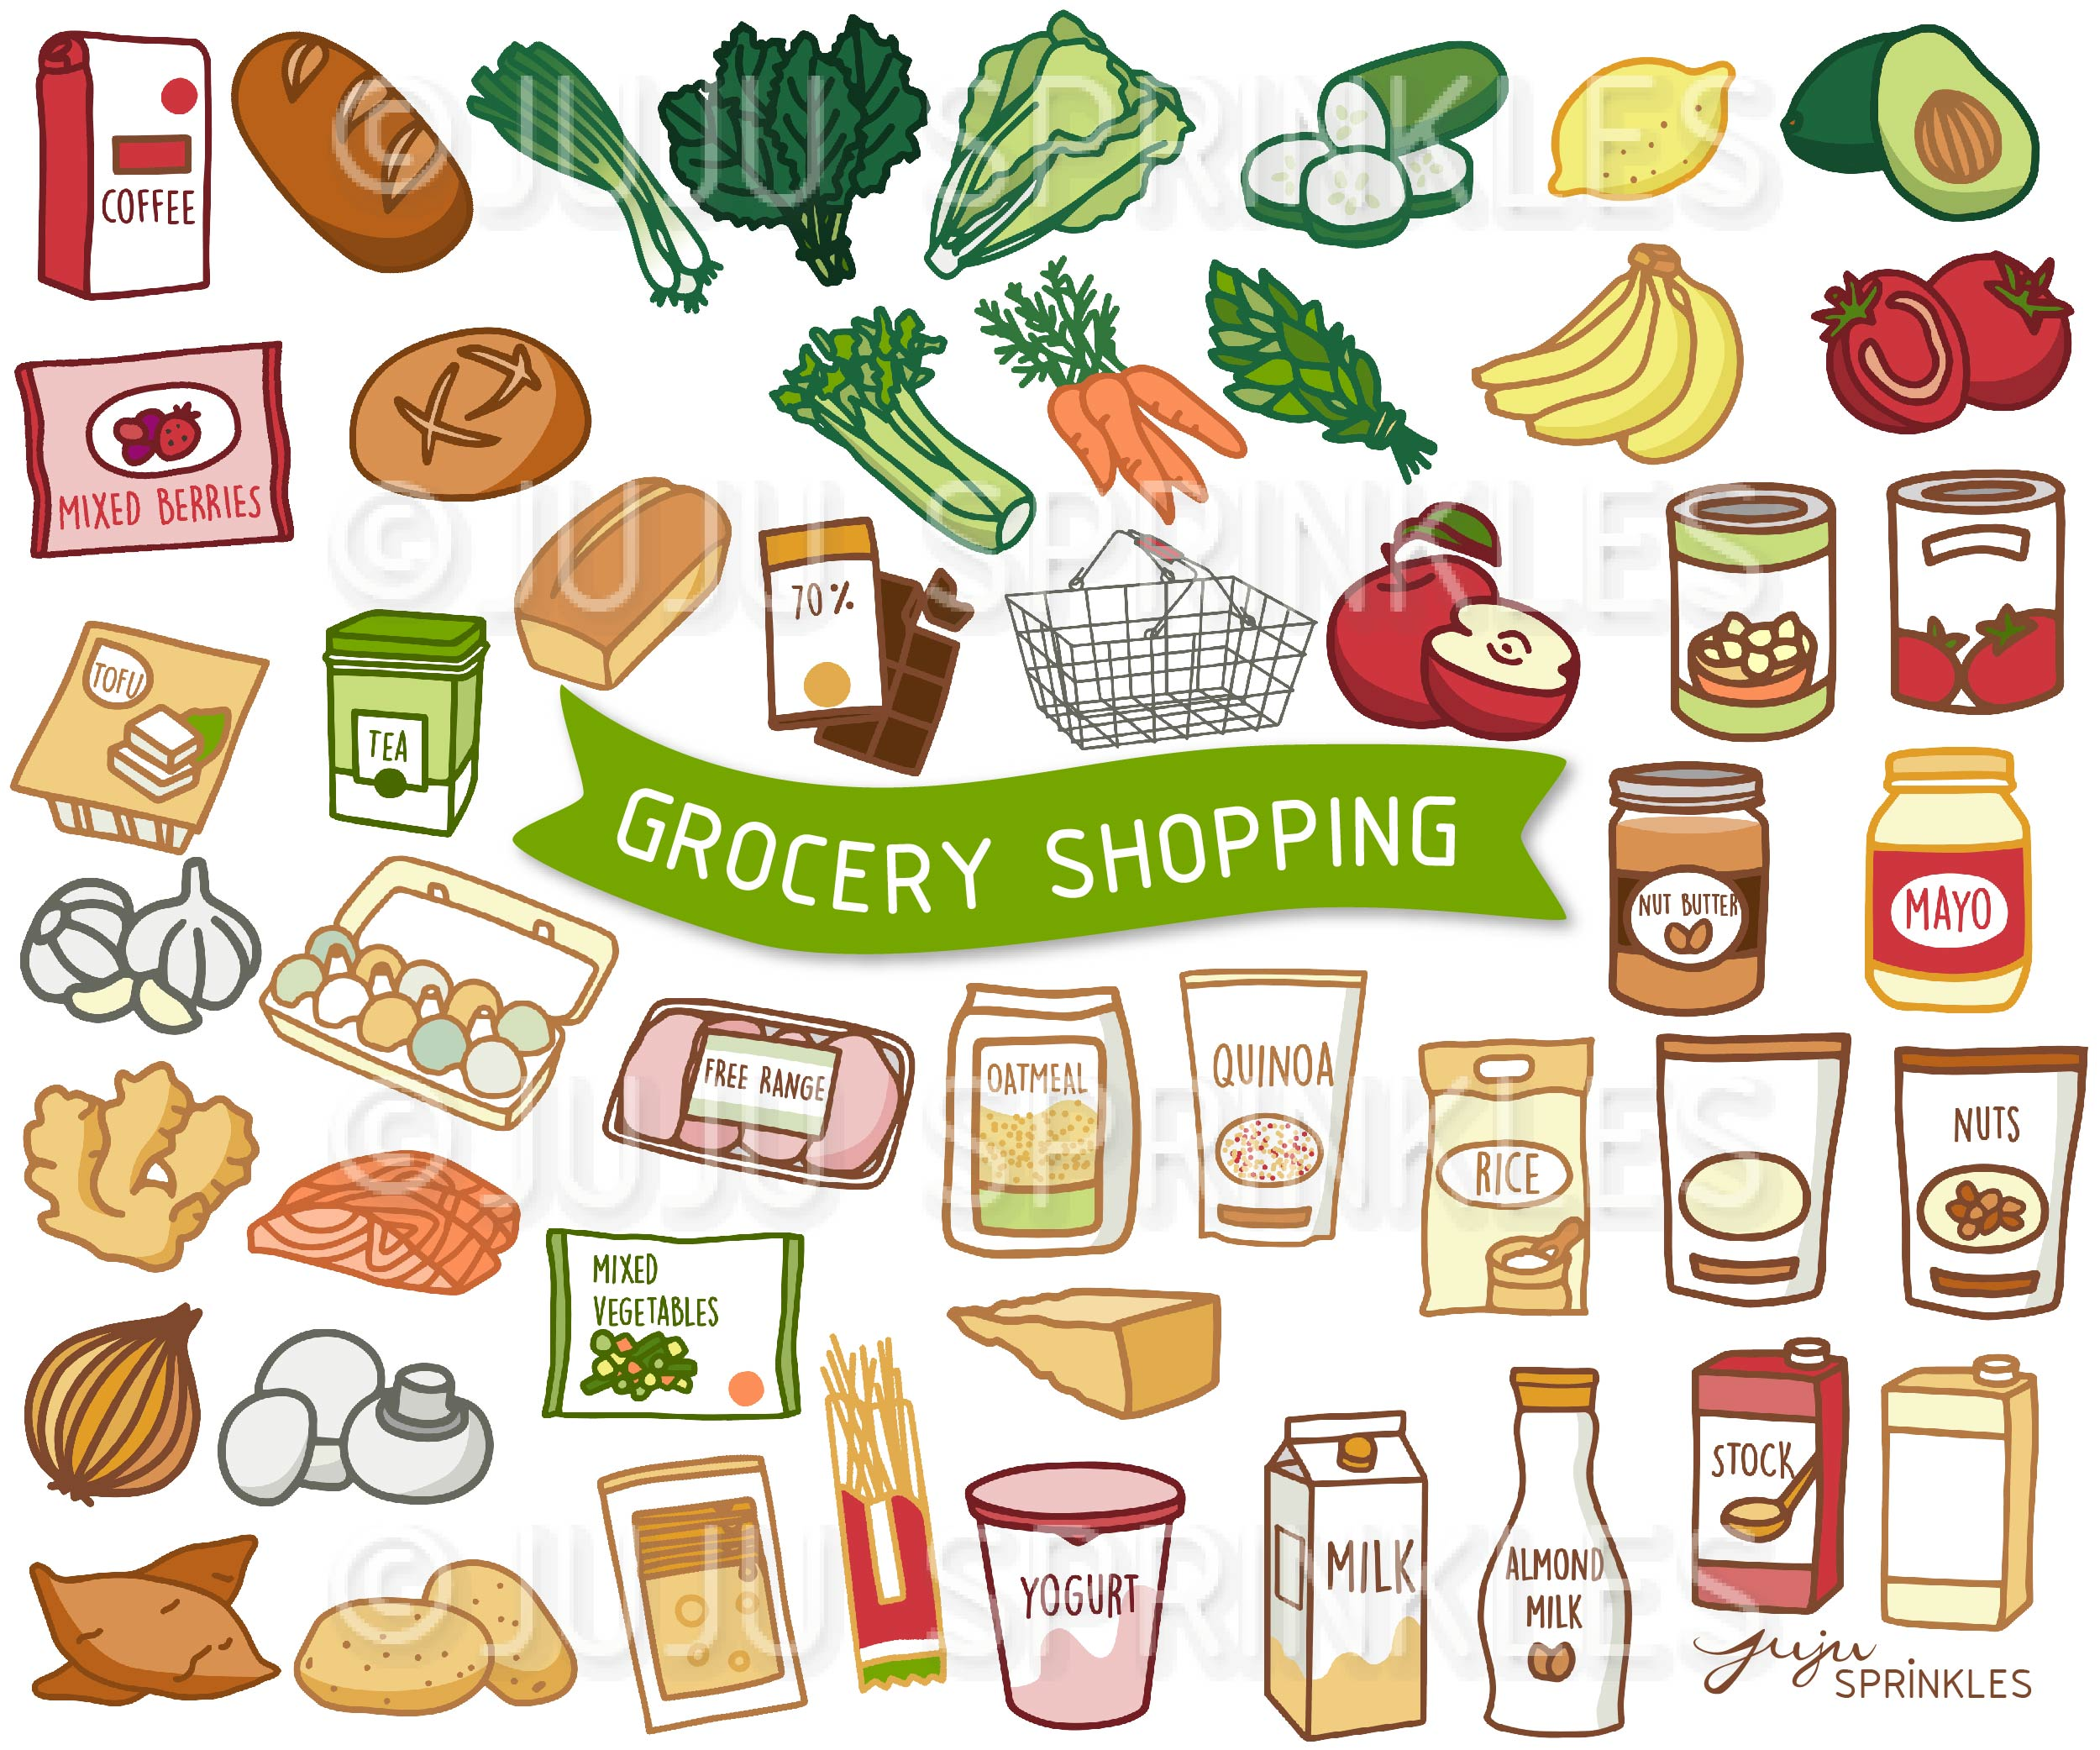 Clipart grocery picture free library Grocery Shopping Clipart and Sticker Set picture free library